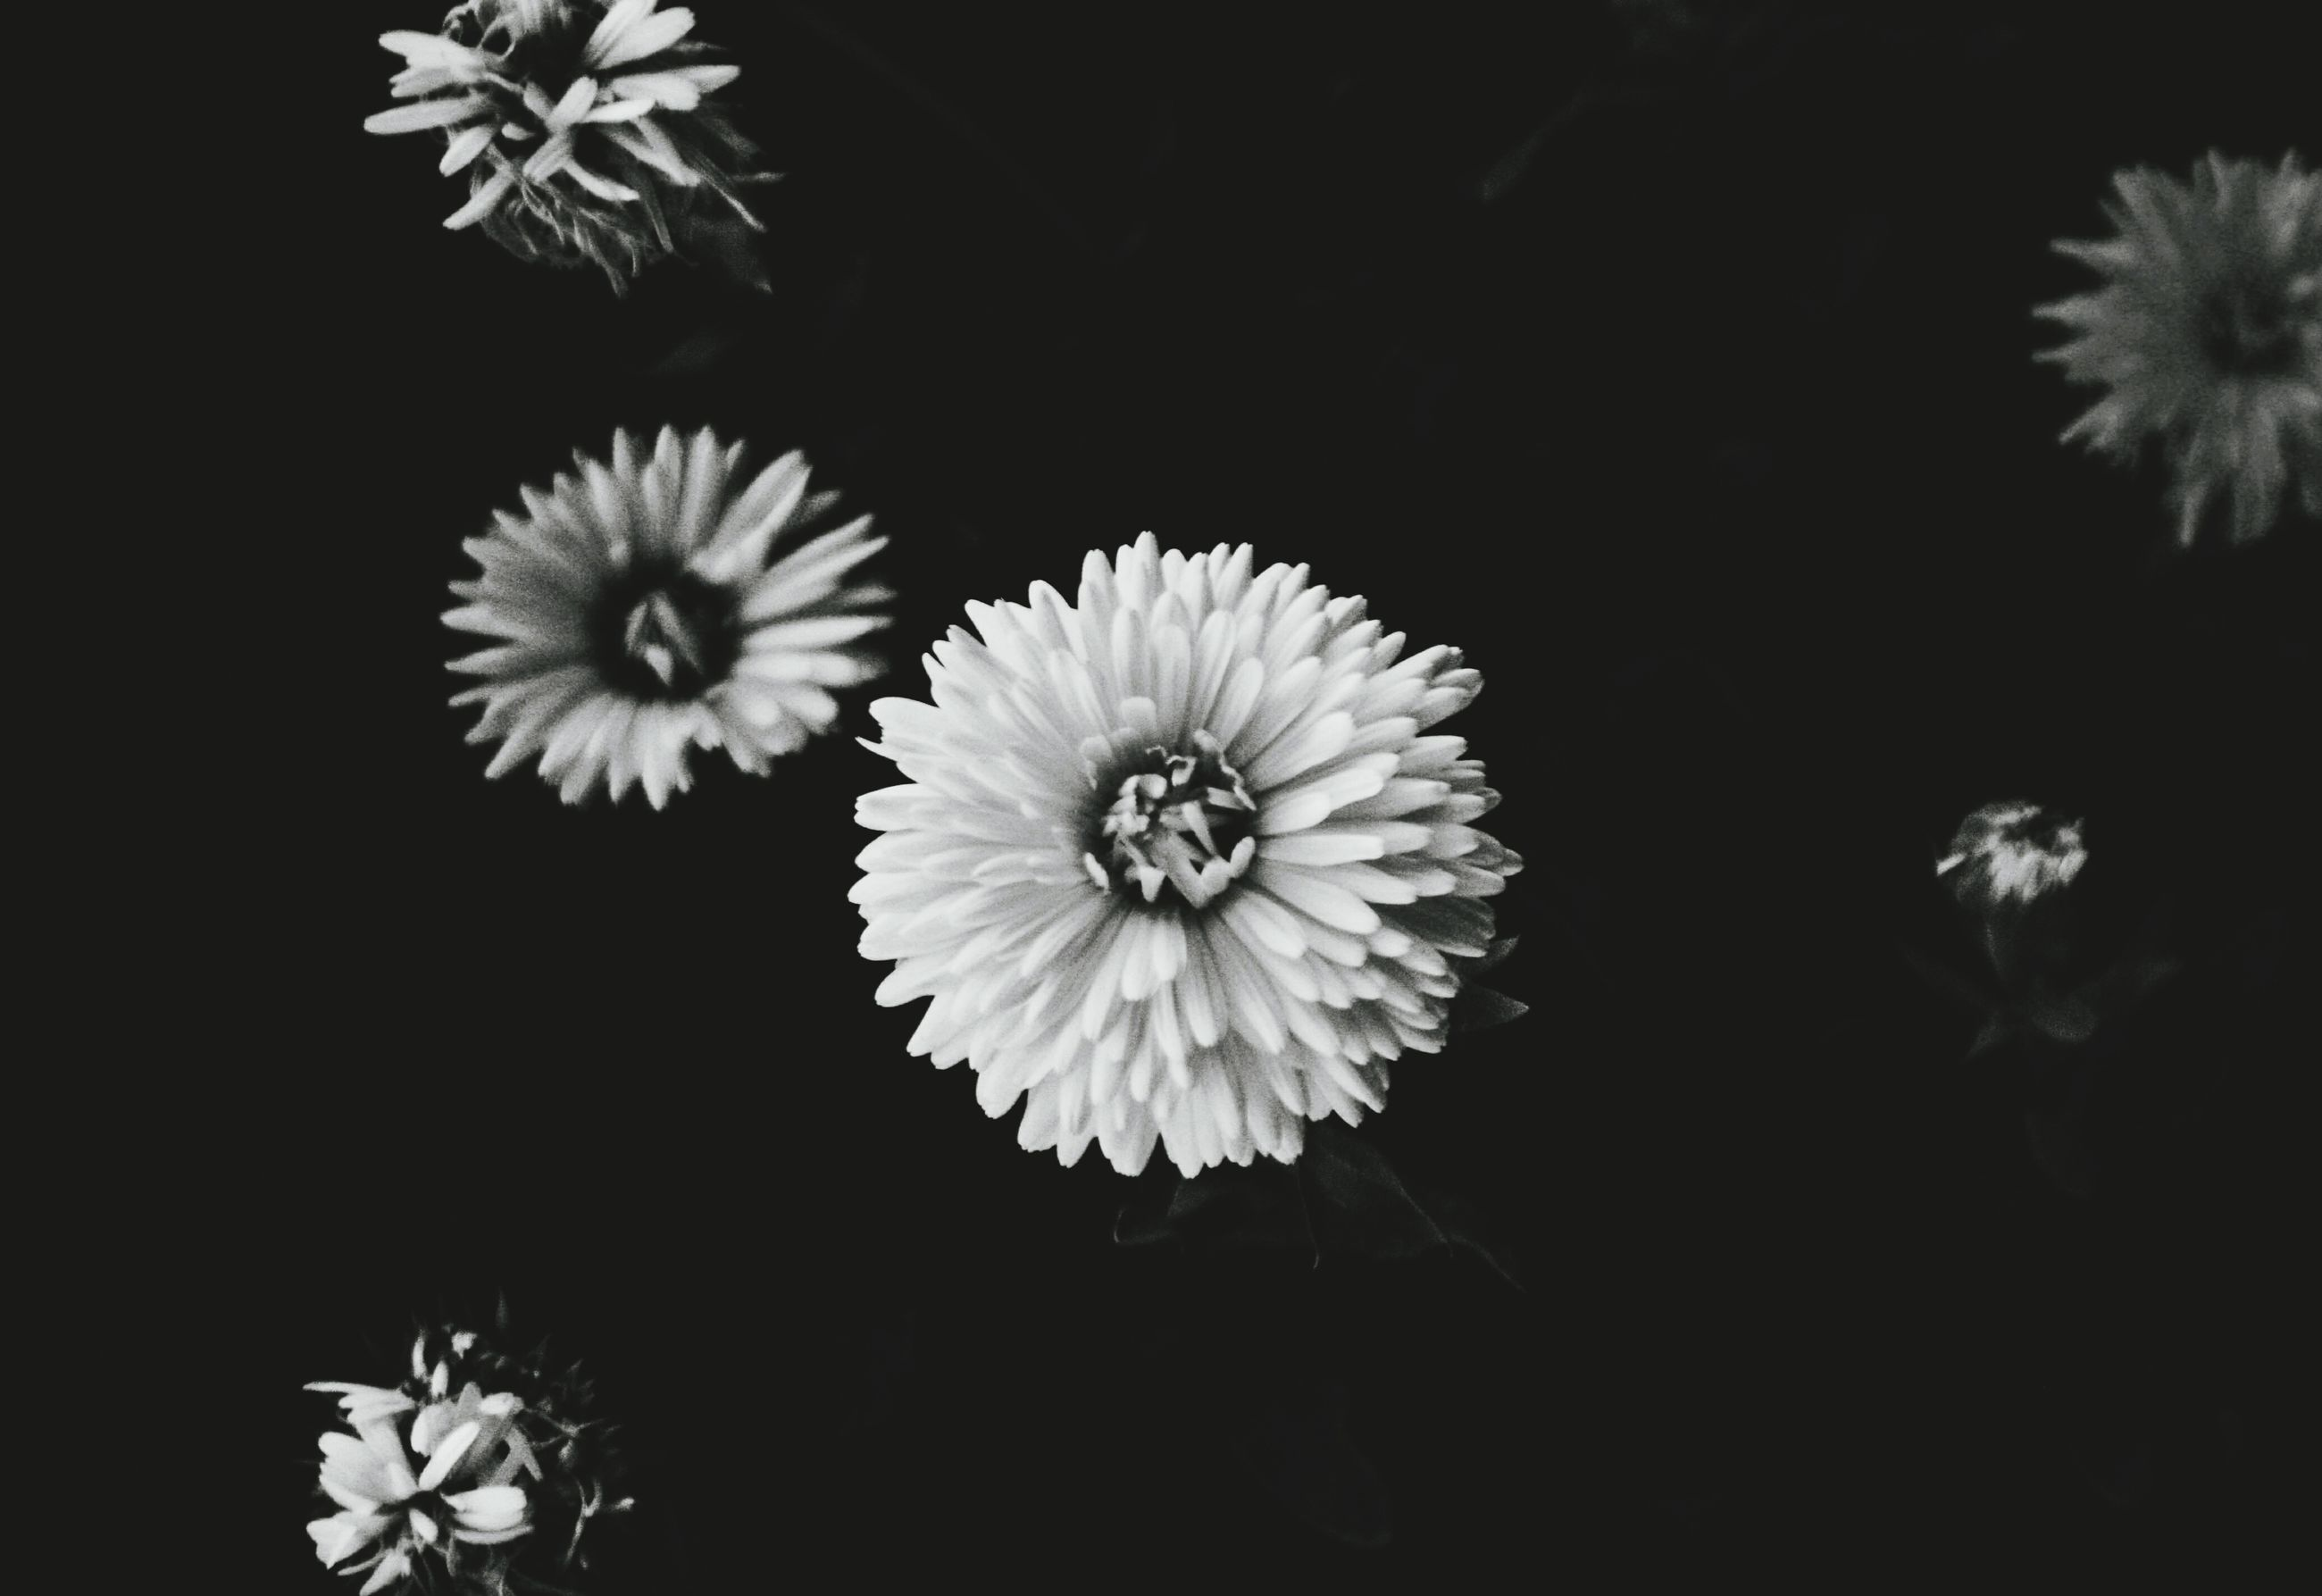 flower, fragility, flower head, beauty in nature, nature, petal, freshness, plant, no people, blooming, gerbera daisy, close-up, outdoors, day, osteospermum